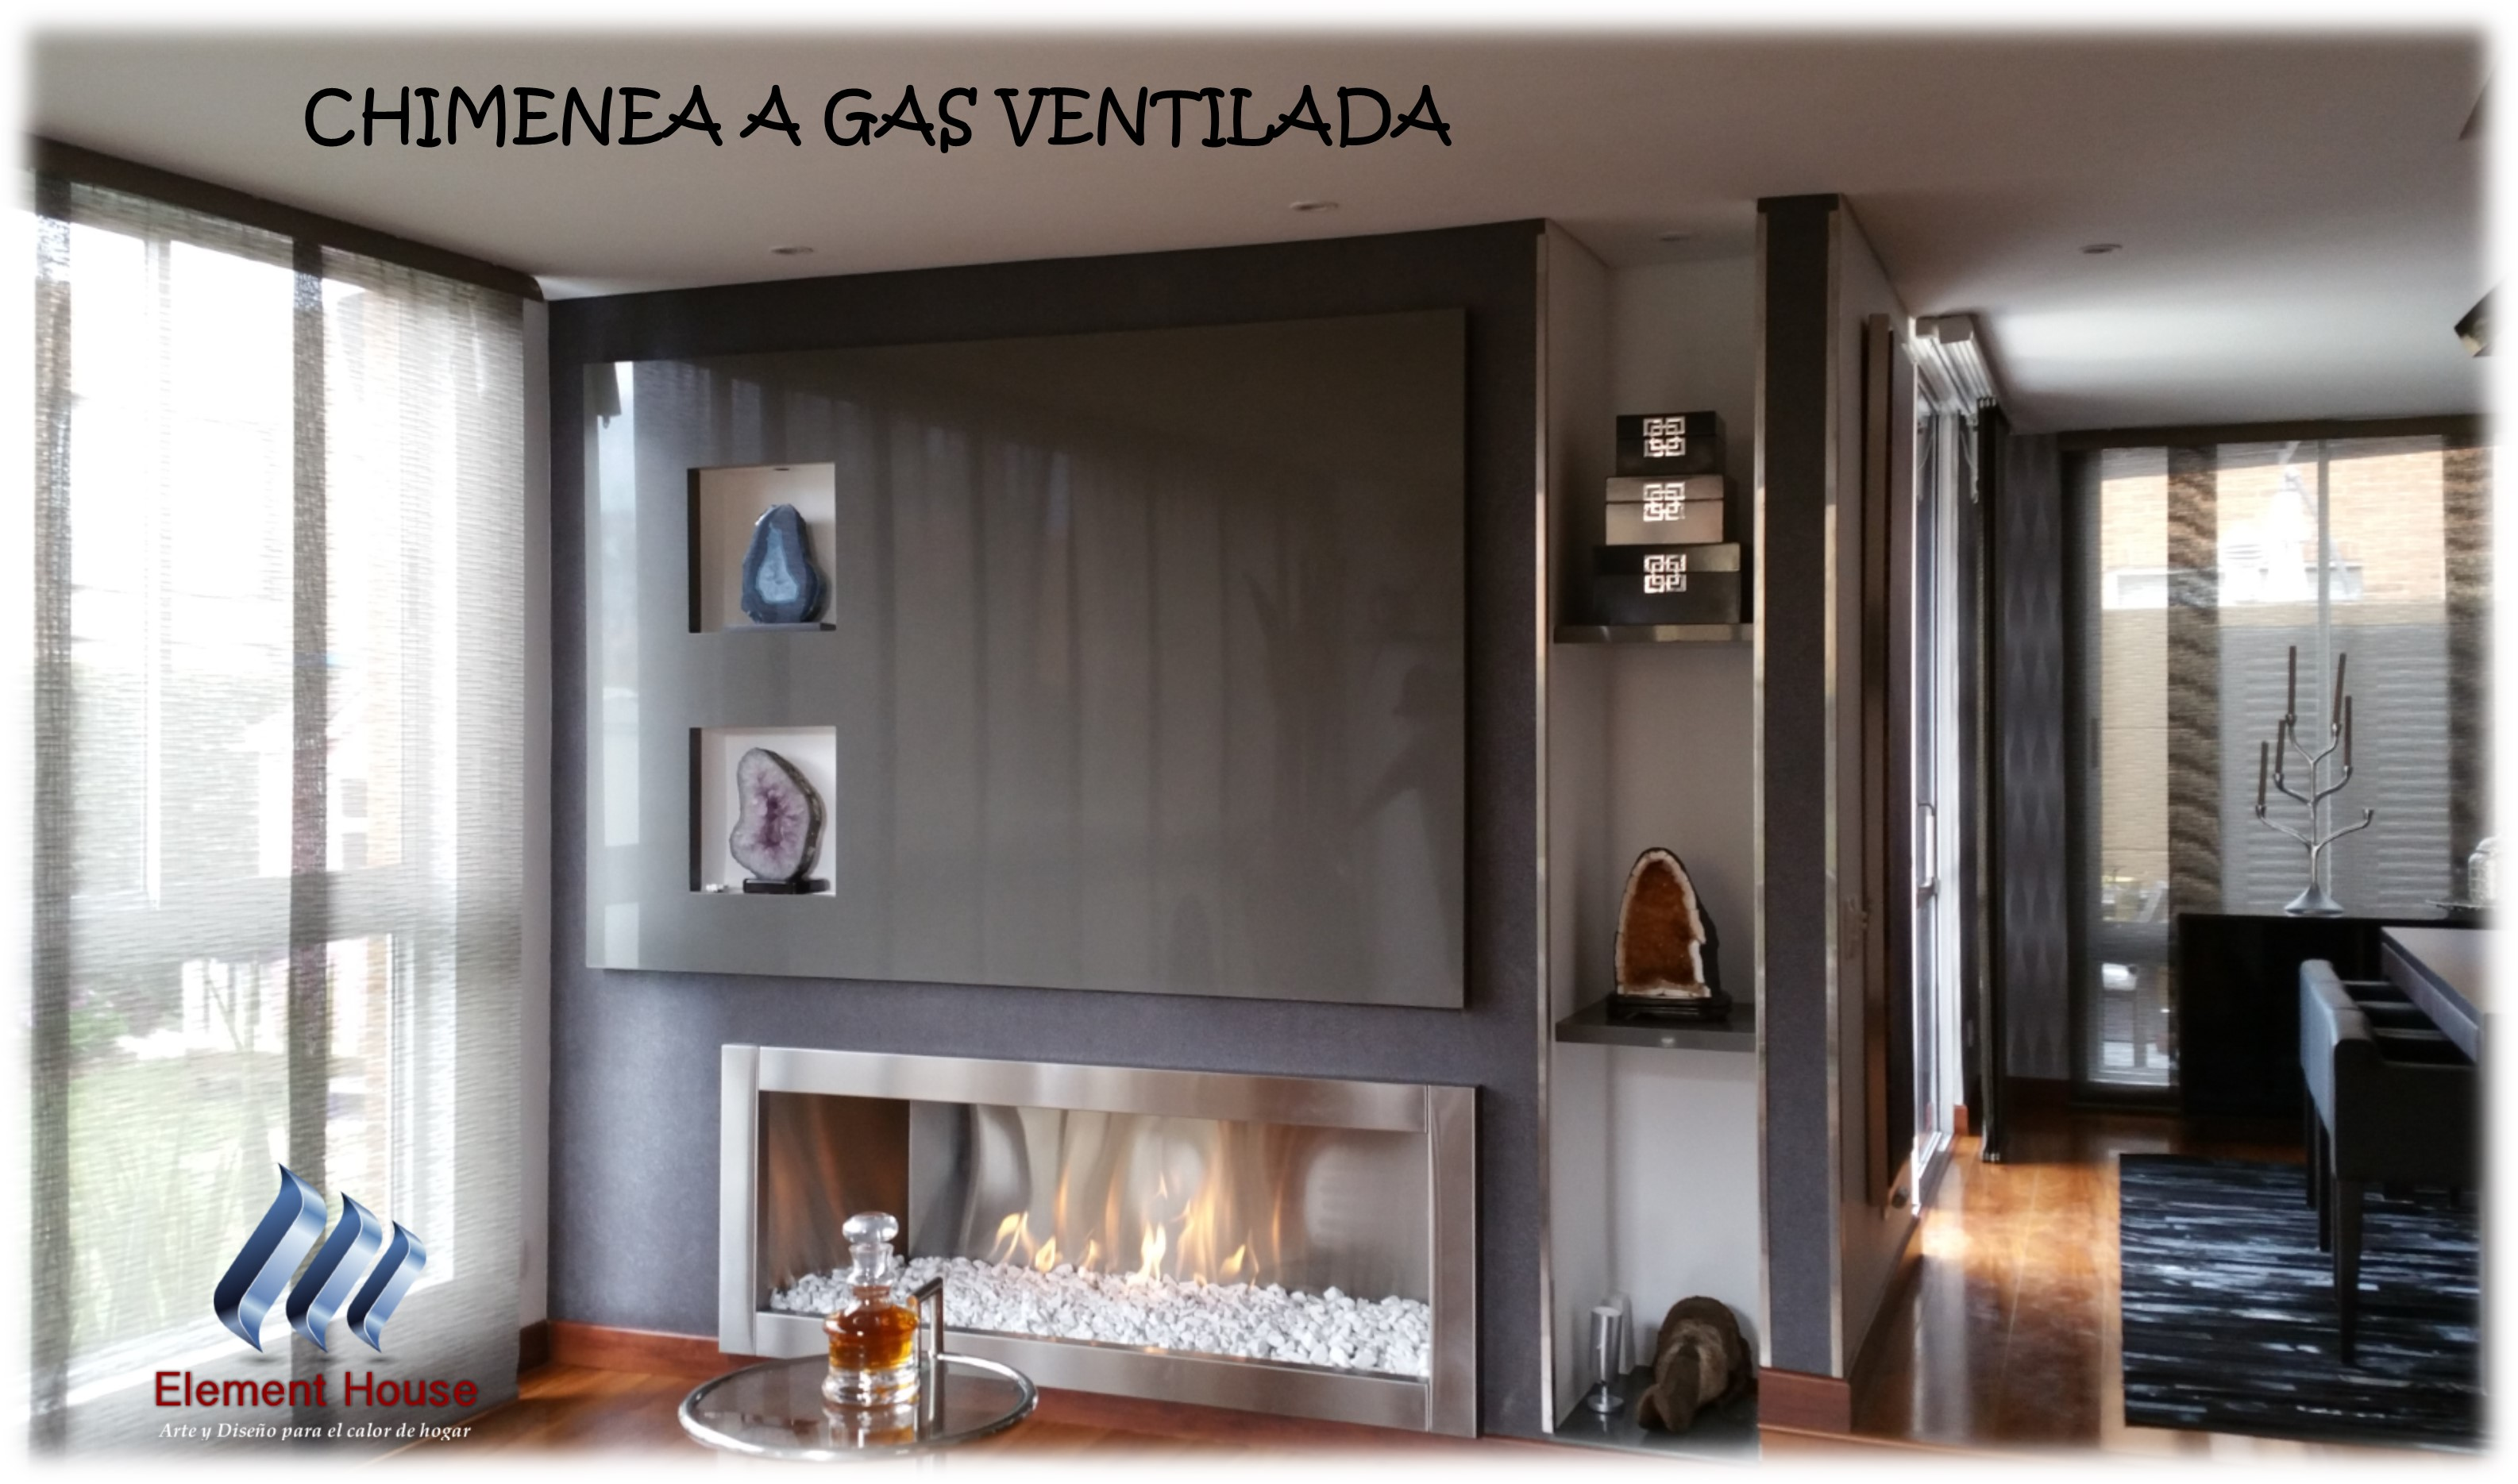 CHIMENEAS A GAS ELEMENT HOUSE (9)